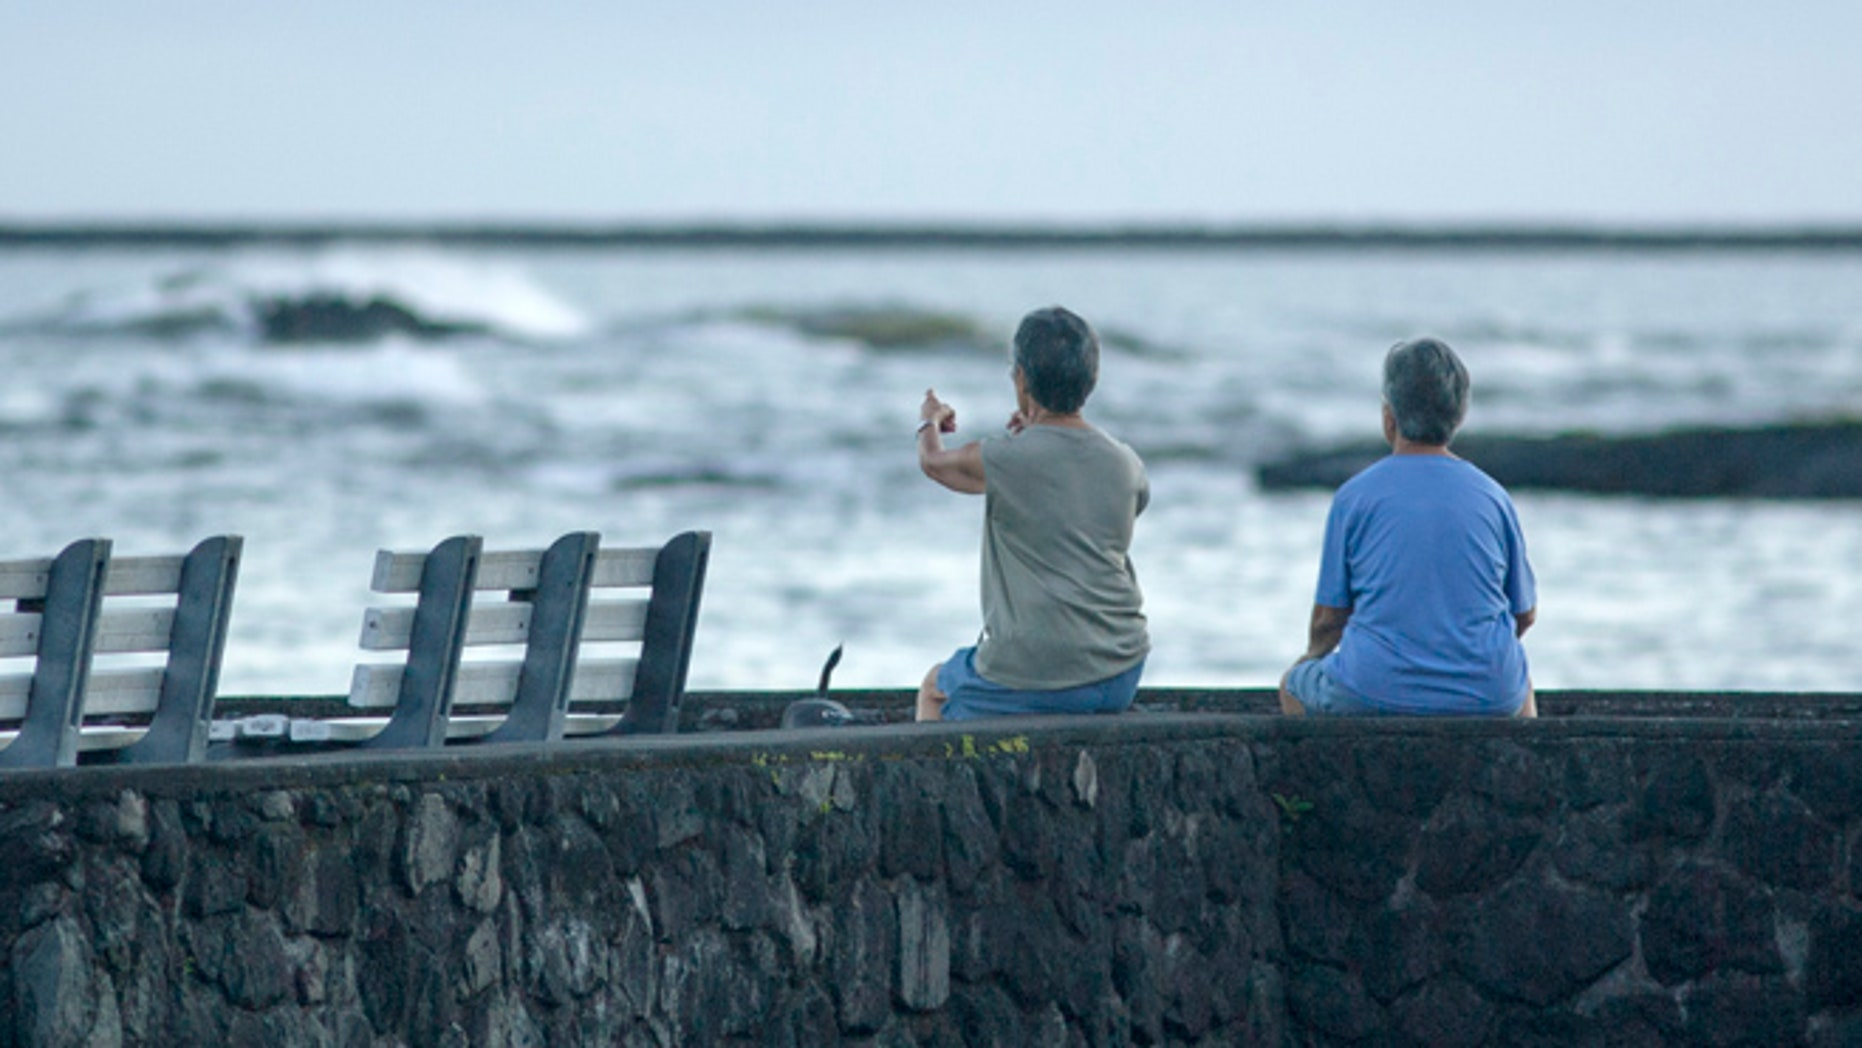 Aug. 31: Jeri, left, and Jen Nakano, both from Hilo, sit near the ocean in Hilo, Hawaii.